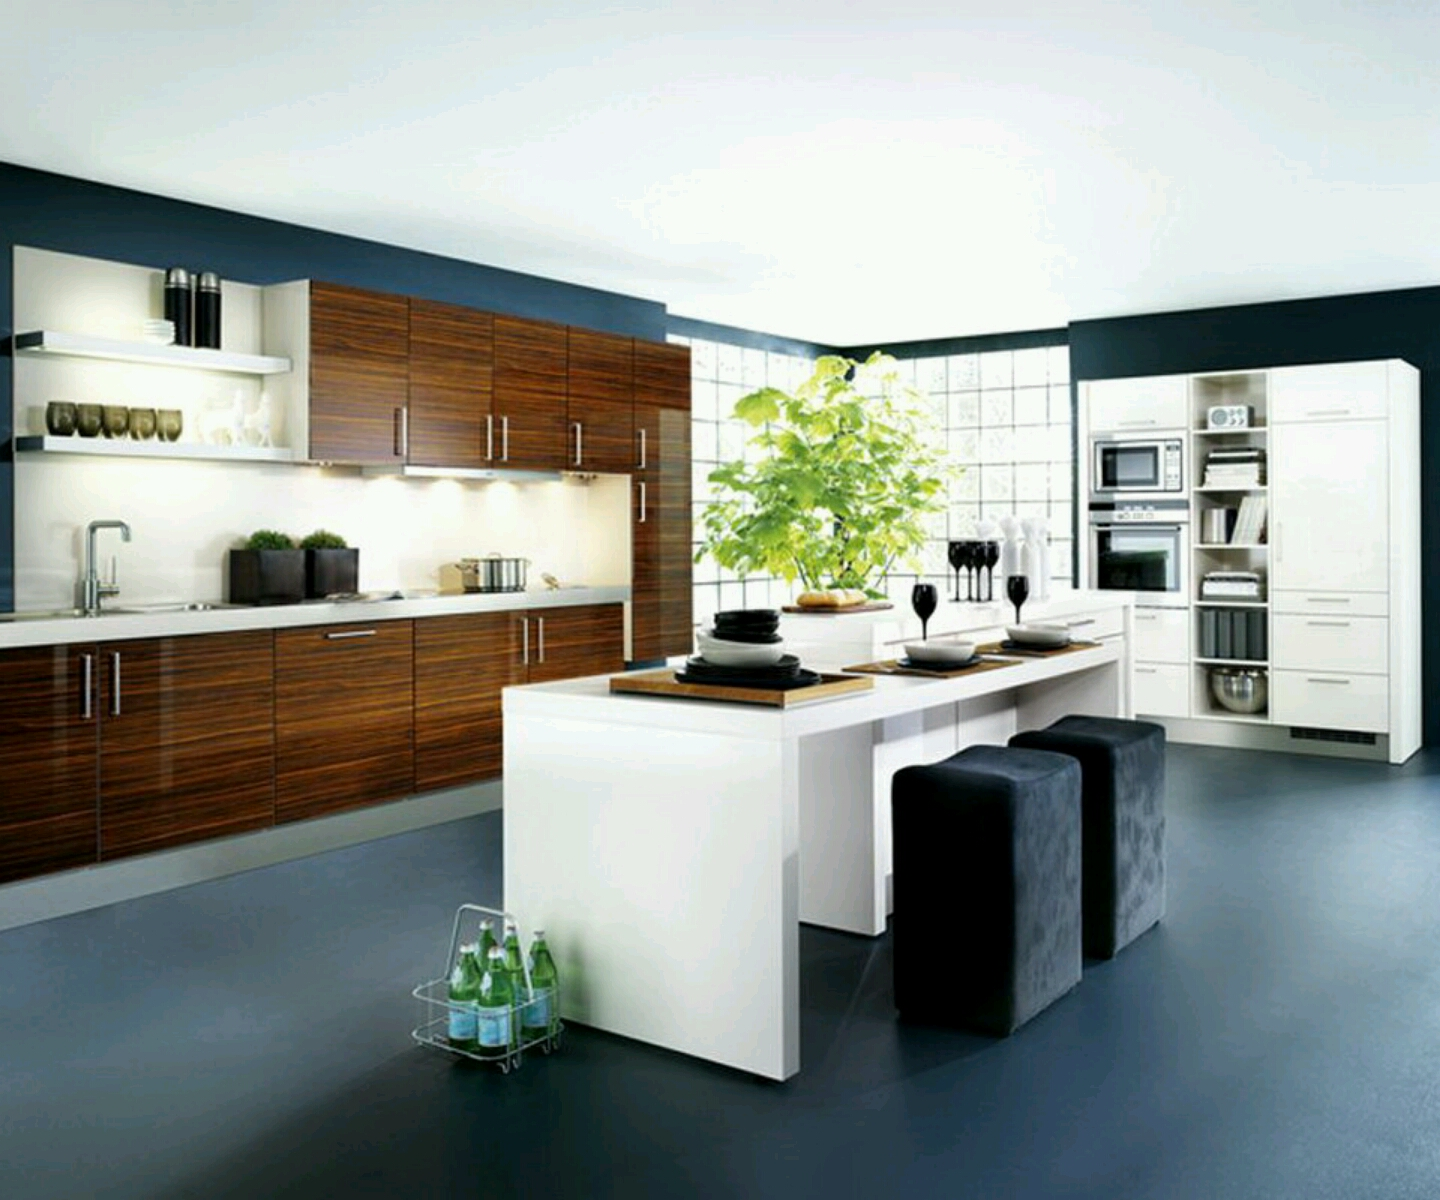 New home designs latest kitchen cabinets designs modern for Modern kitchen remodel